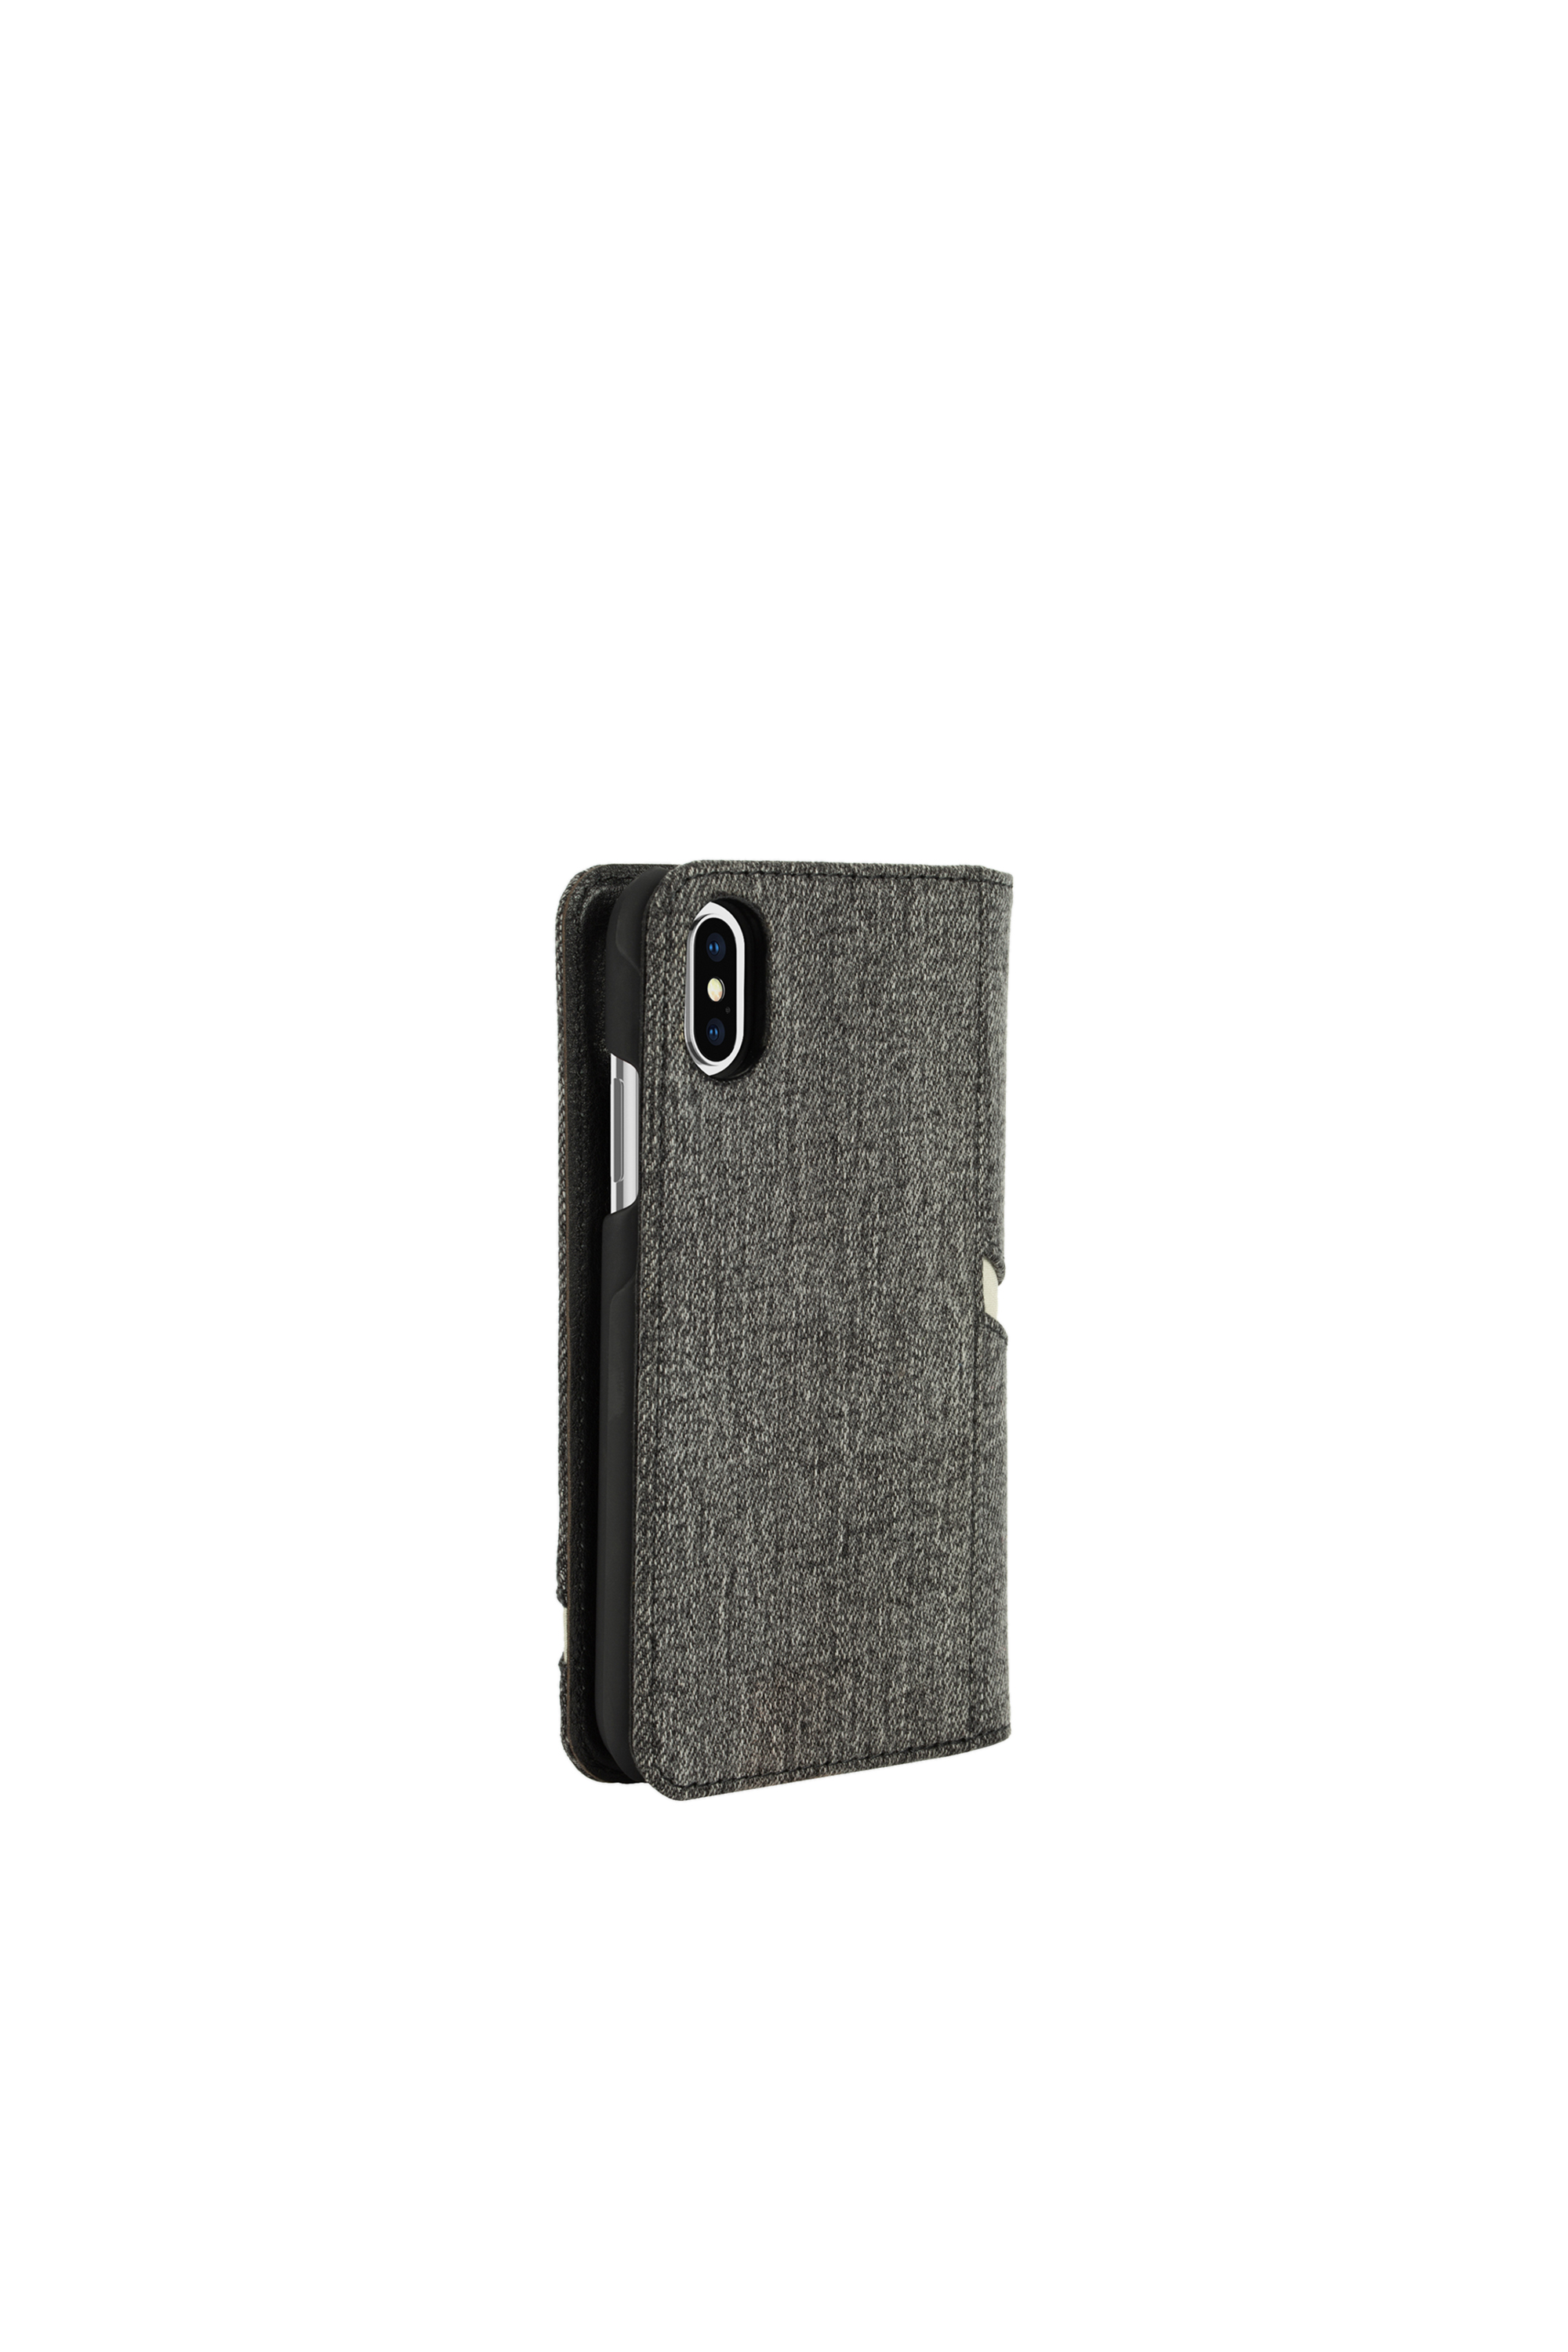 Diesel - DIESEL 2-IN-1 FOLIO CASE FOR IPHONE XS & IPHONE X,  - Flip covers - Image 4